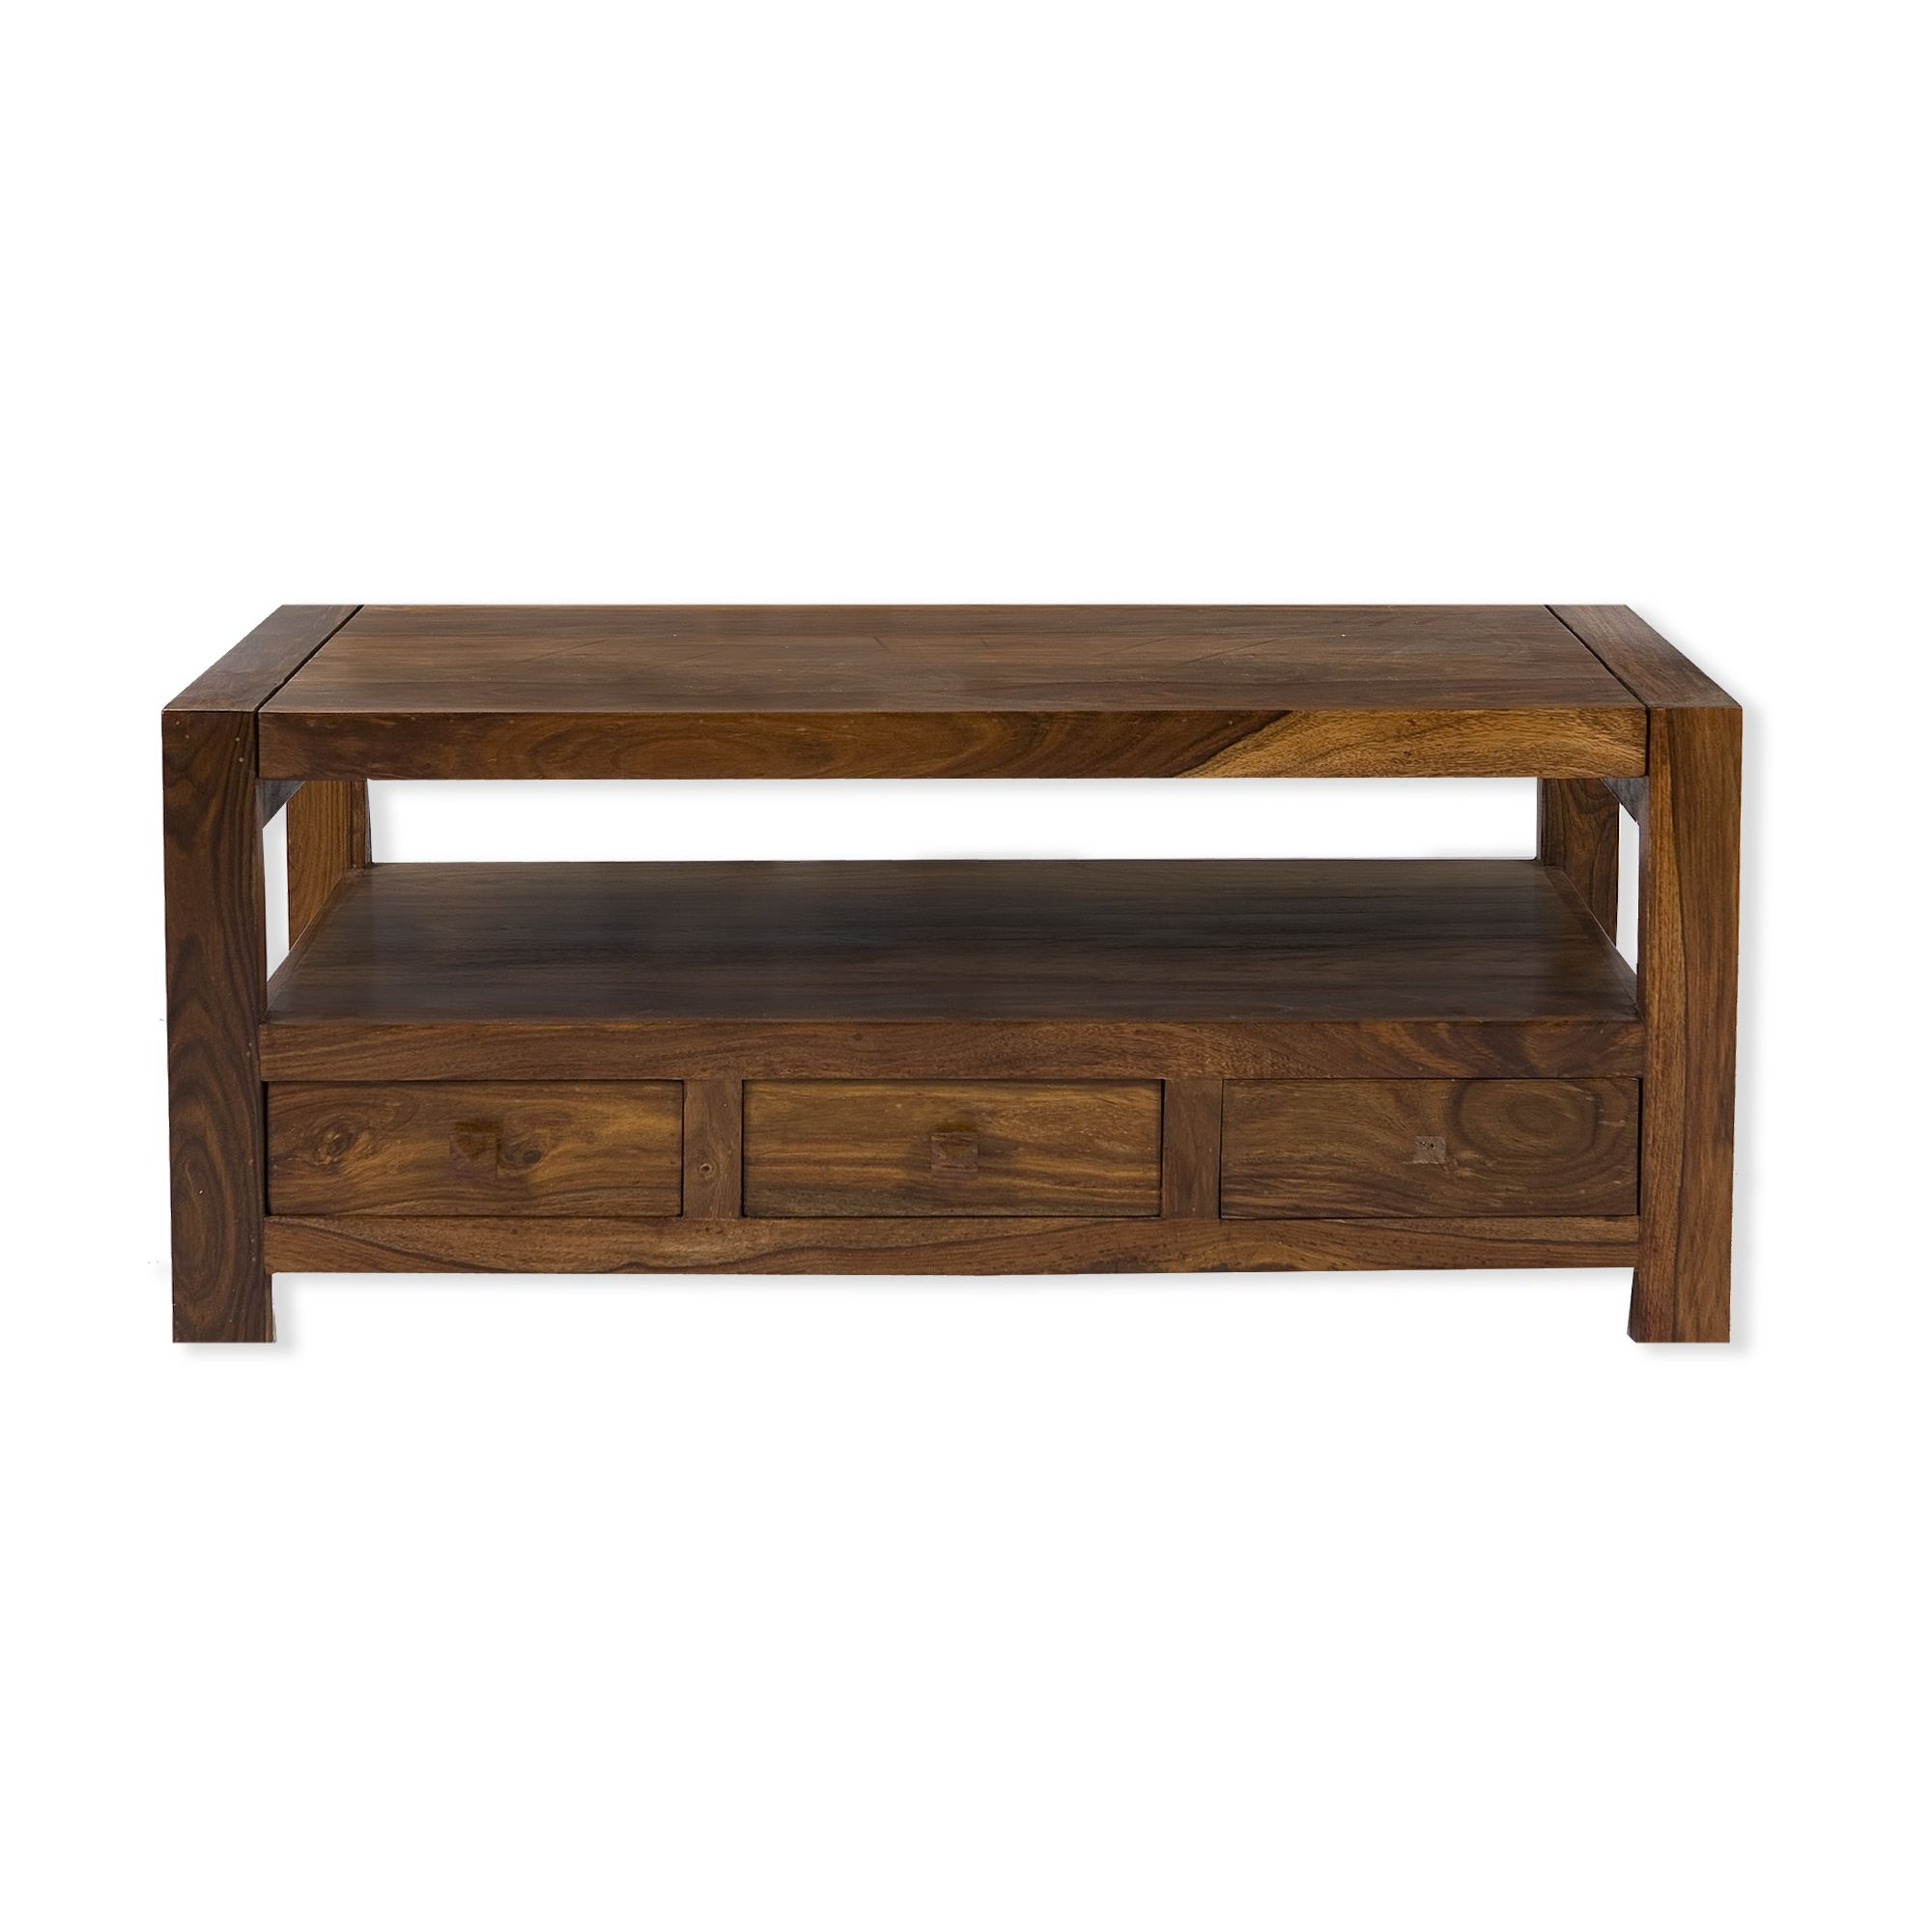 Elements Block Coffee Table in Warm Lacquer at Tesco Direct